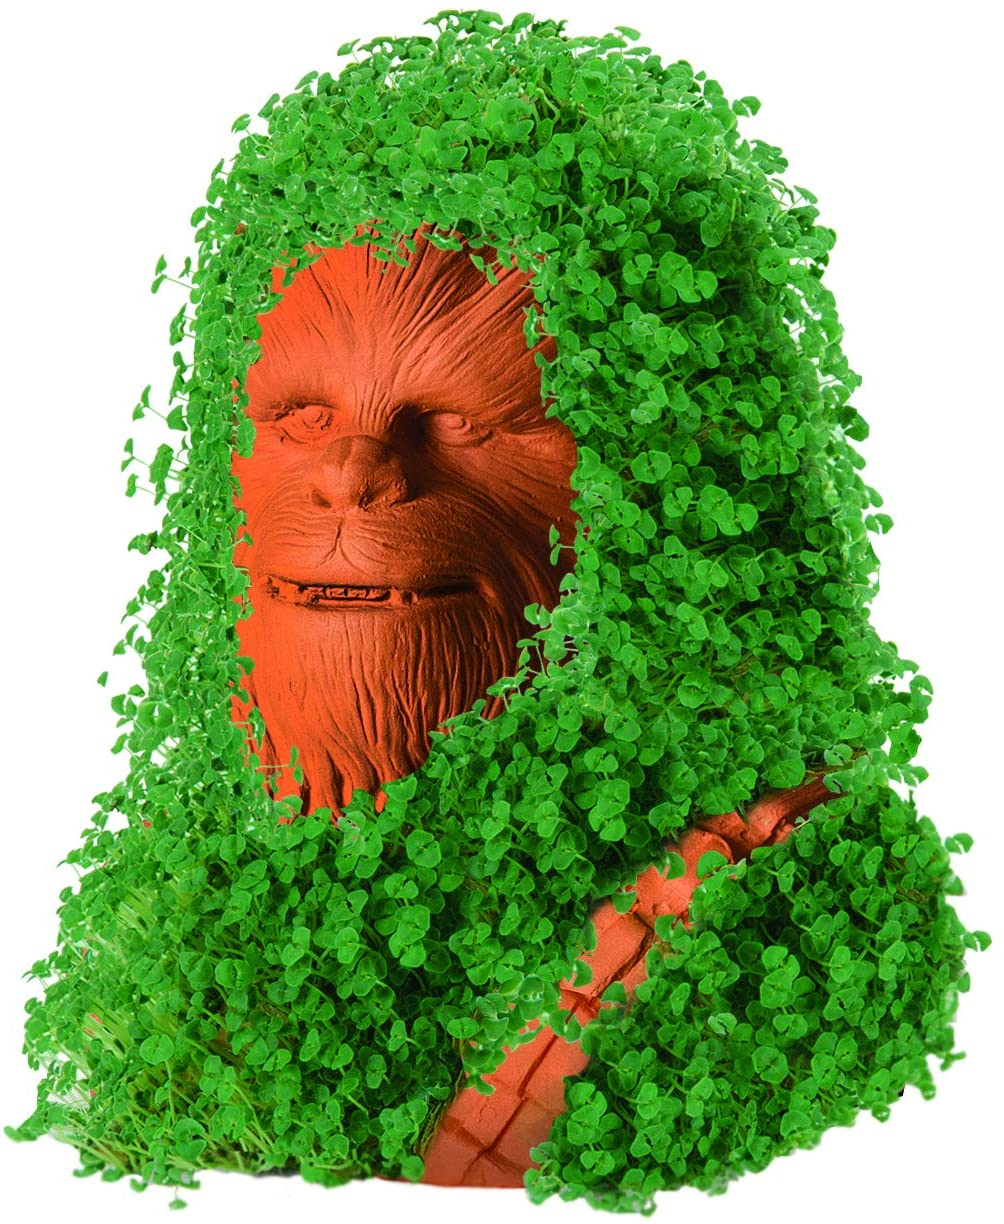 Baby Yoda is now a Chia Pet 18